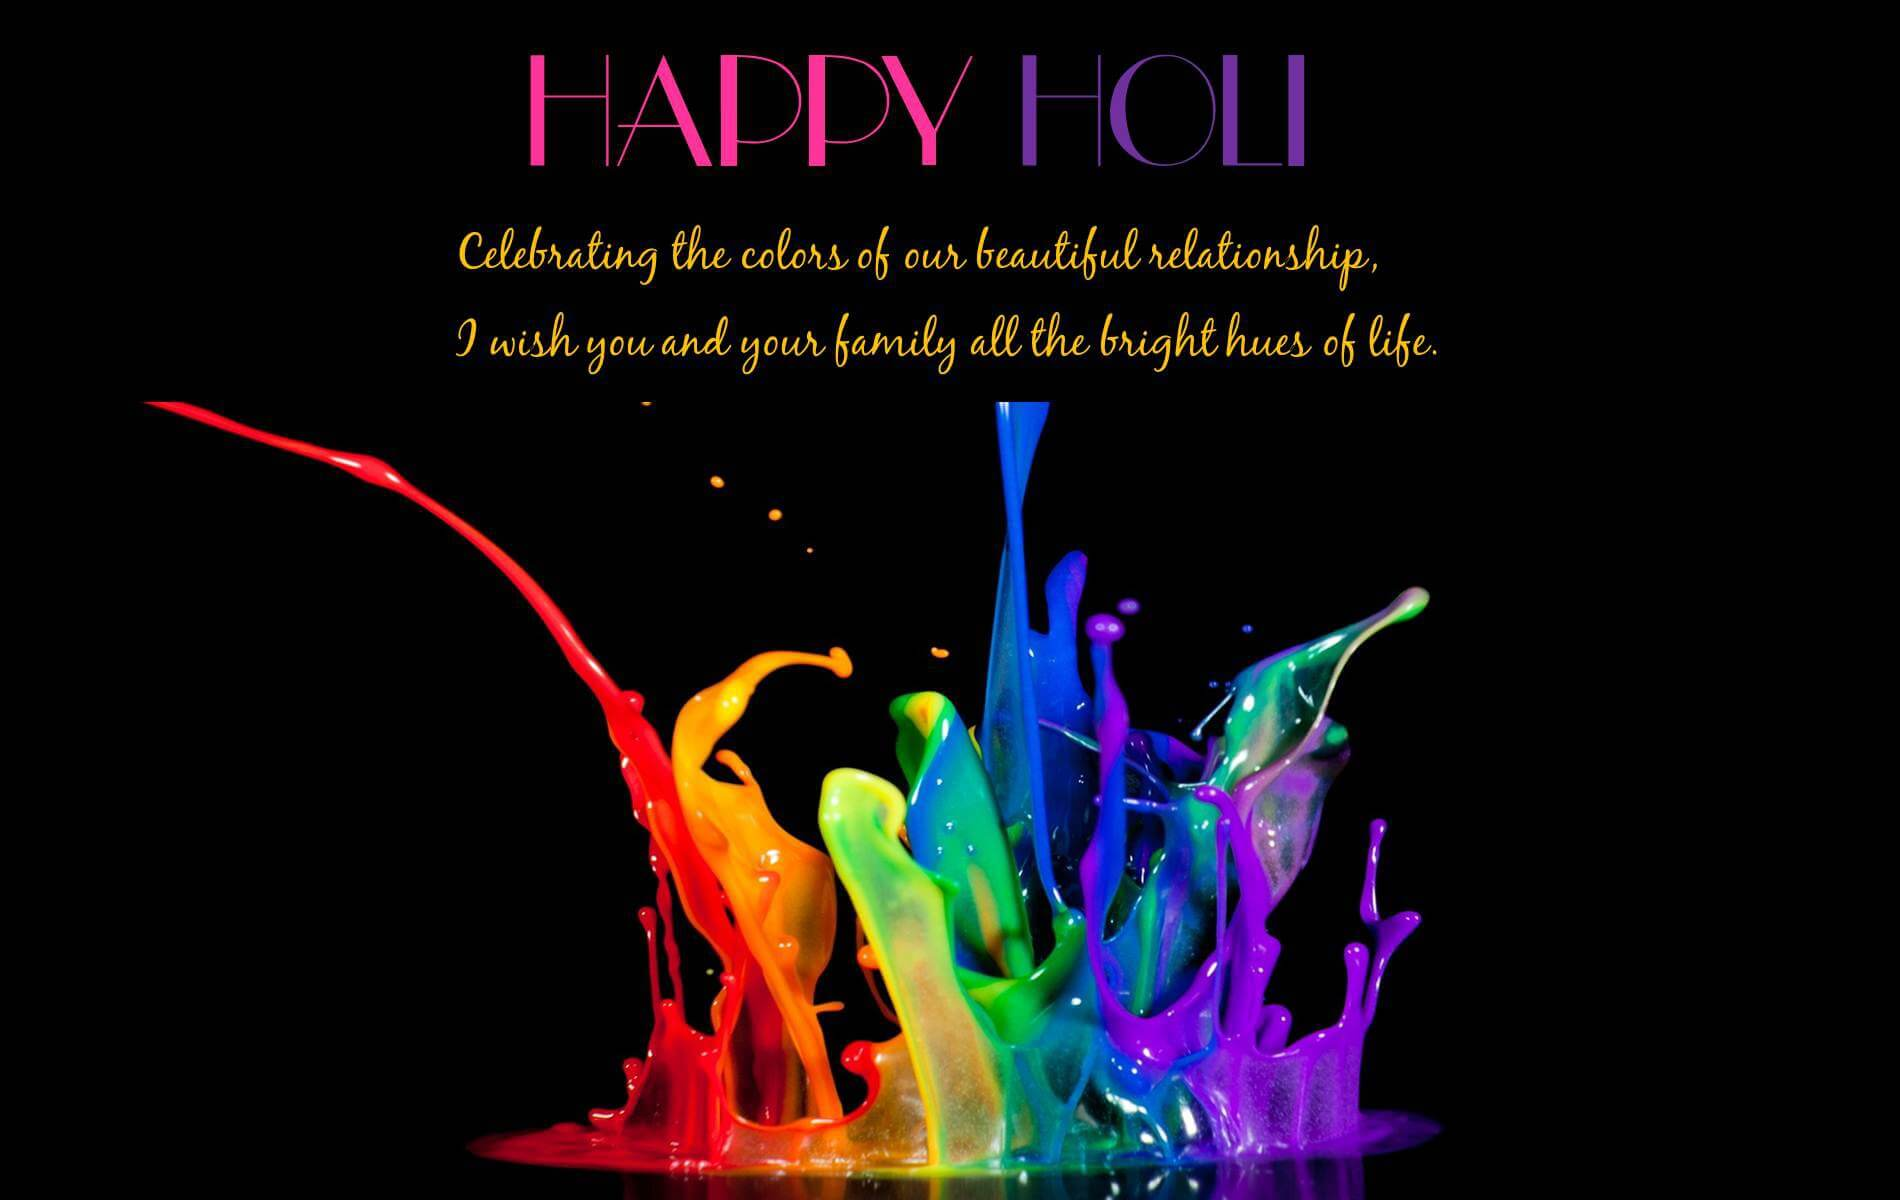 happy holi wallpaper background hd free